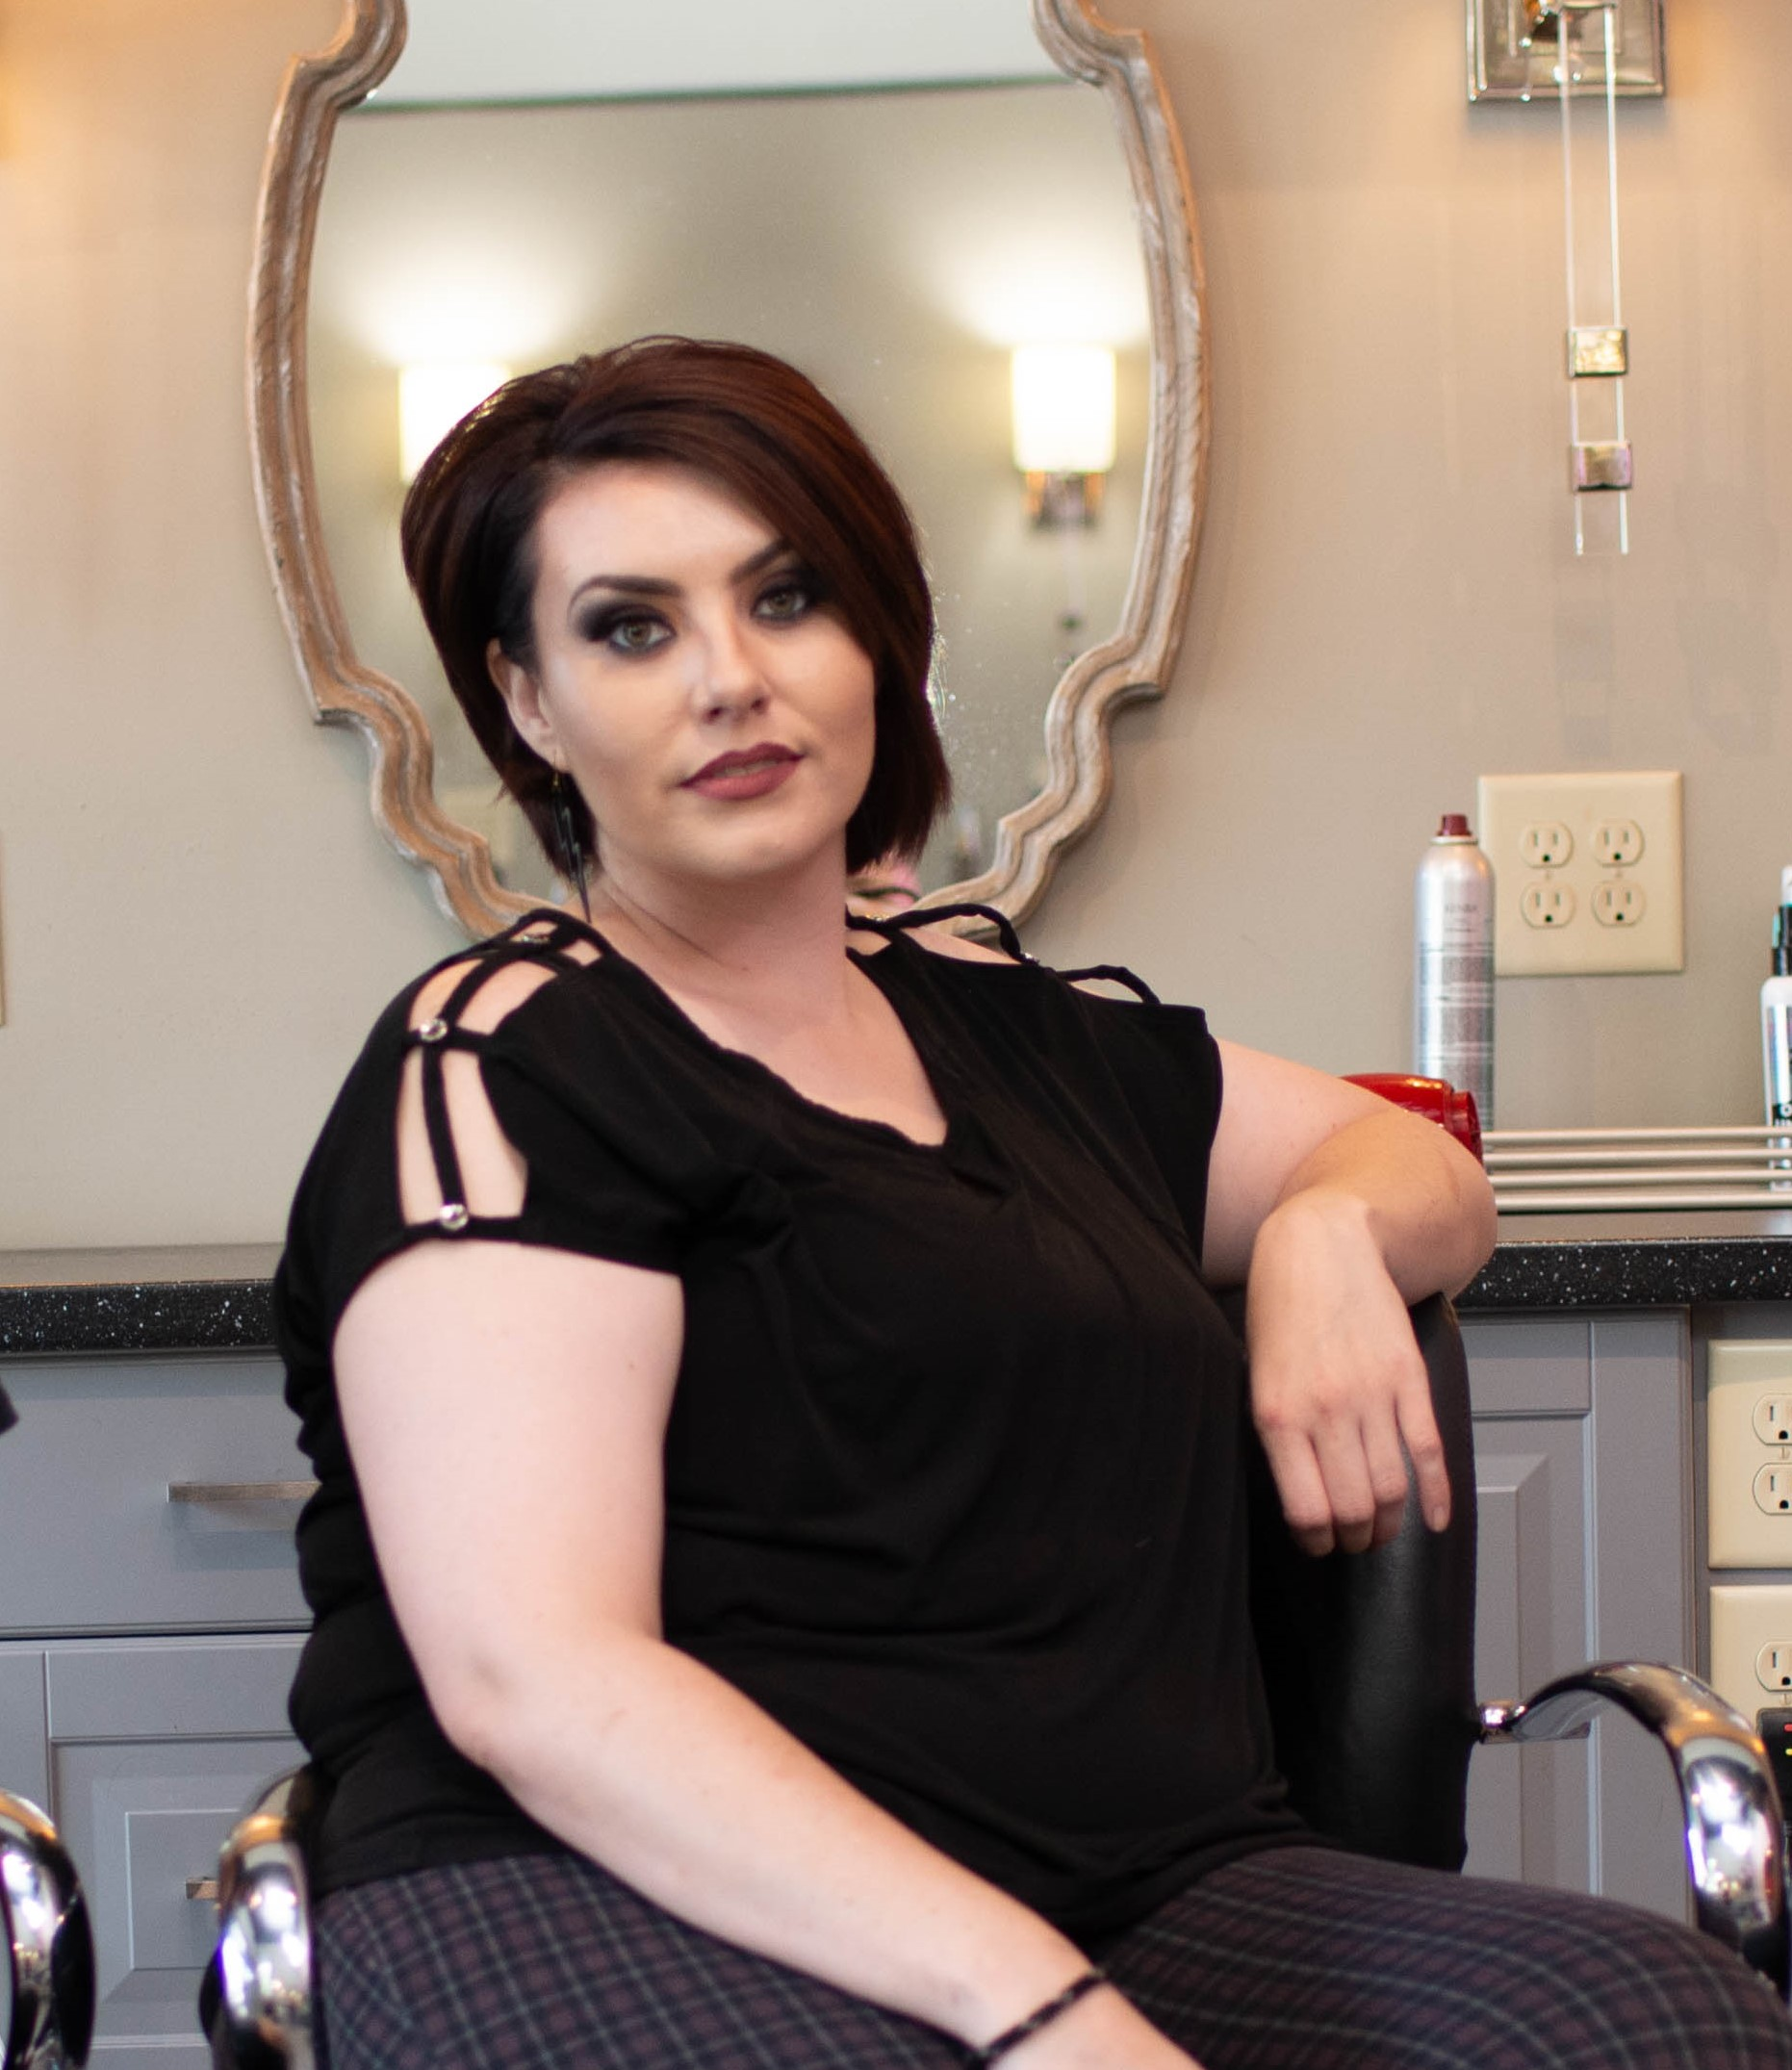 JessicaStylist - Hair Stylist Jessica Ray moved from Alabama 2 years ago chasing excitement and found it here in Nashville! Jessica has has 7 years of experience behind the chair and is constantly furthering her education. She is currently a Blonde and Vivids specialist!